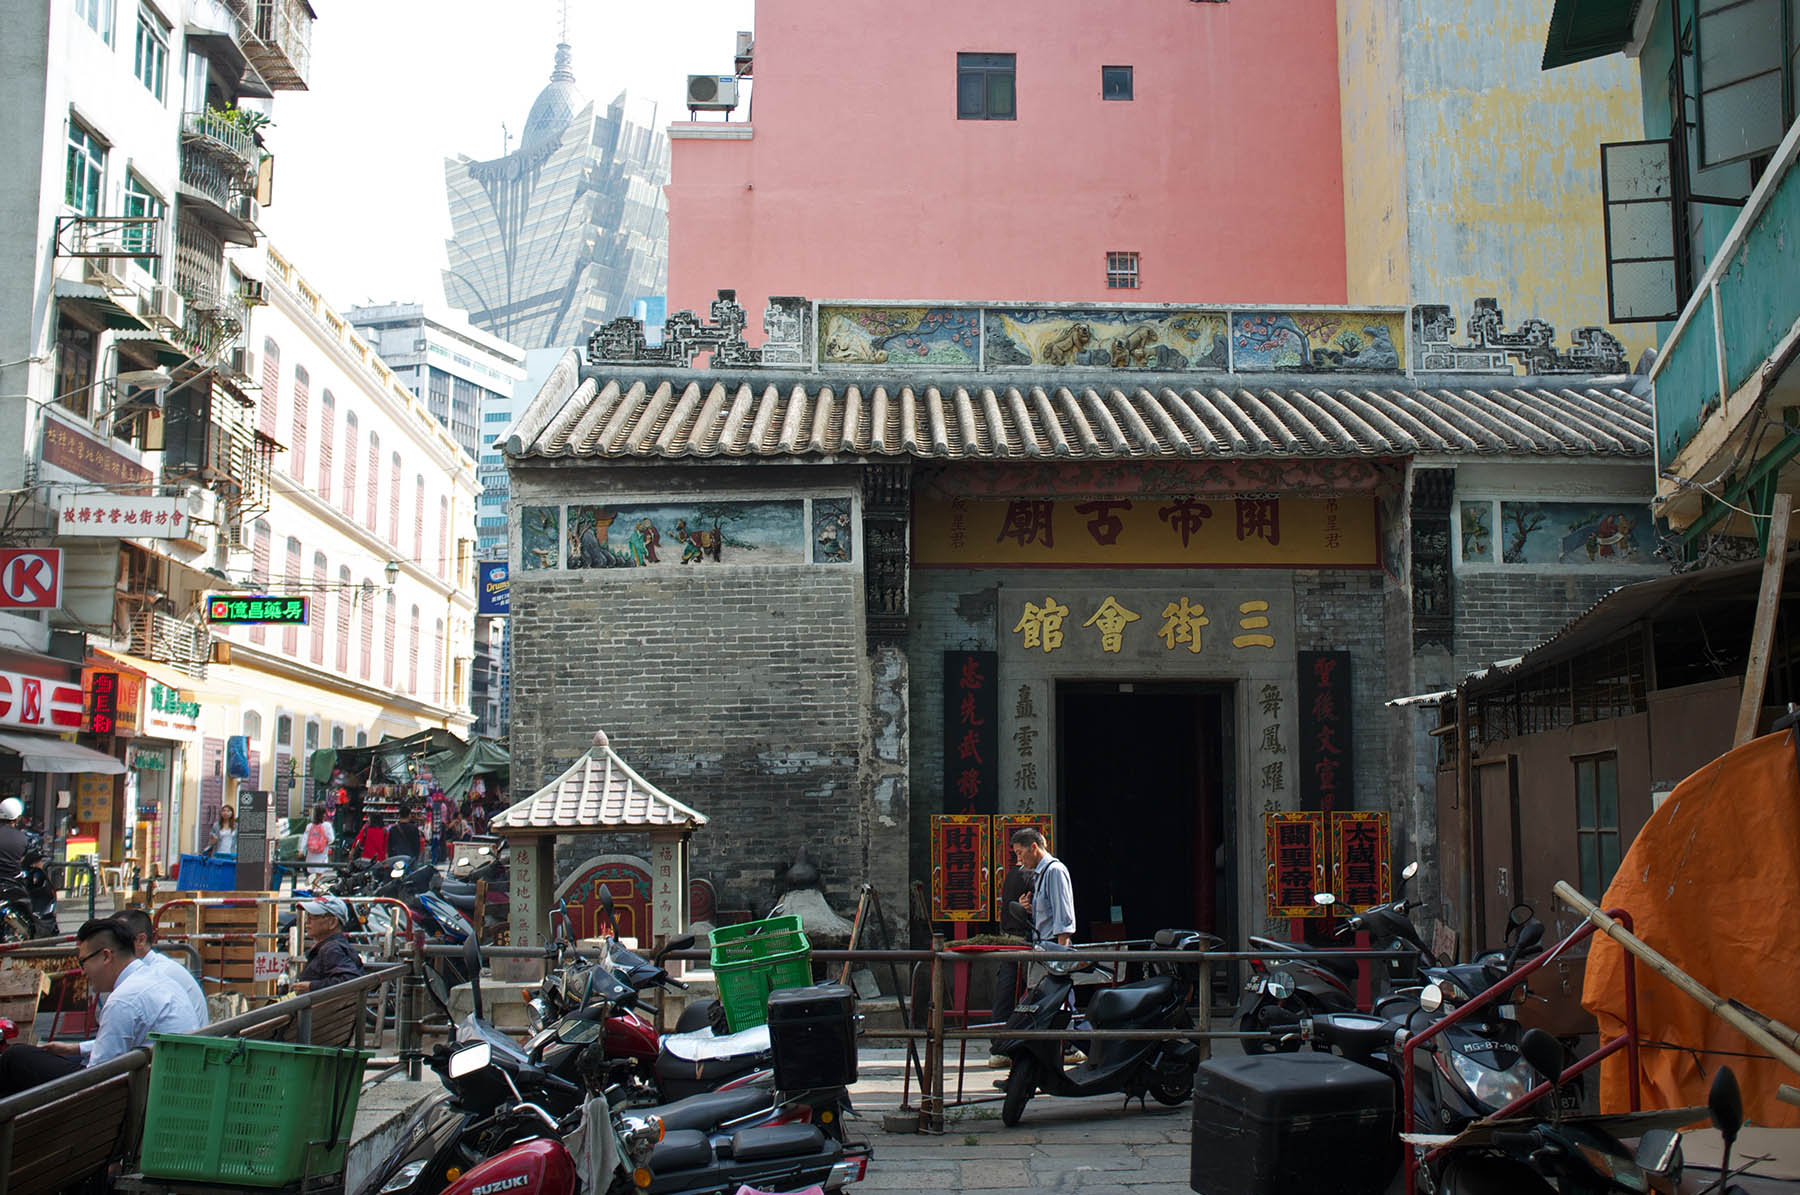 Old Chinese temple surrounded by modern and European architecture.